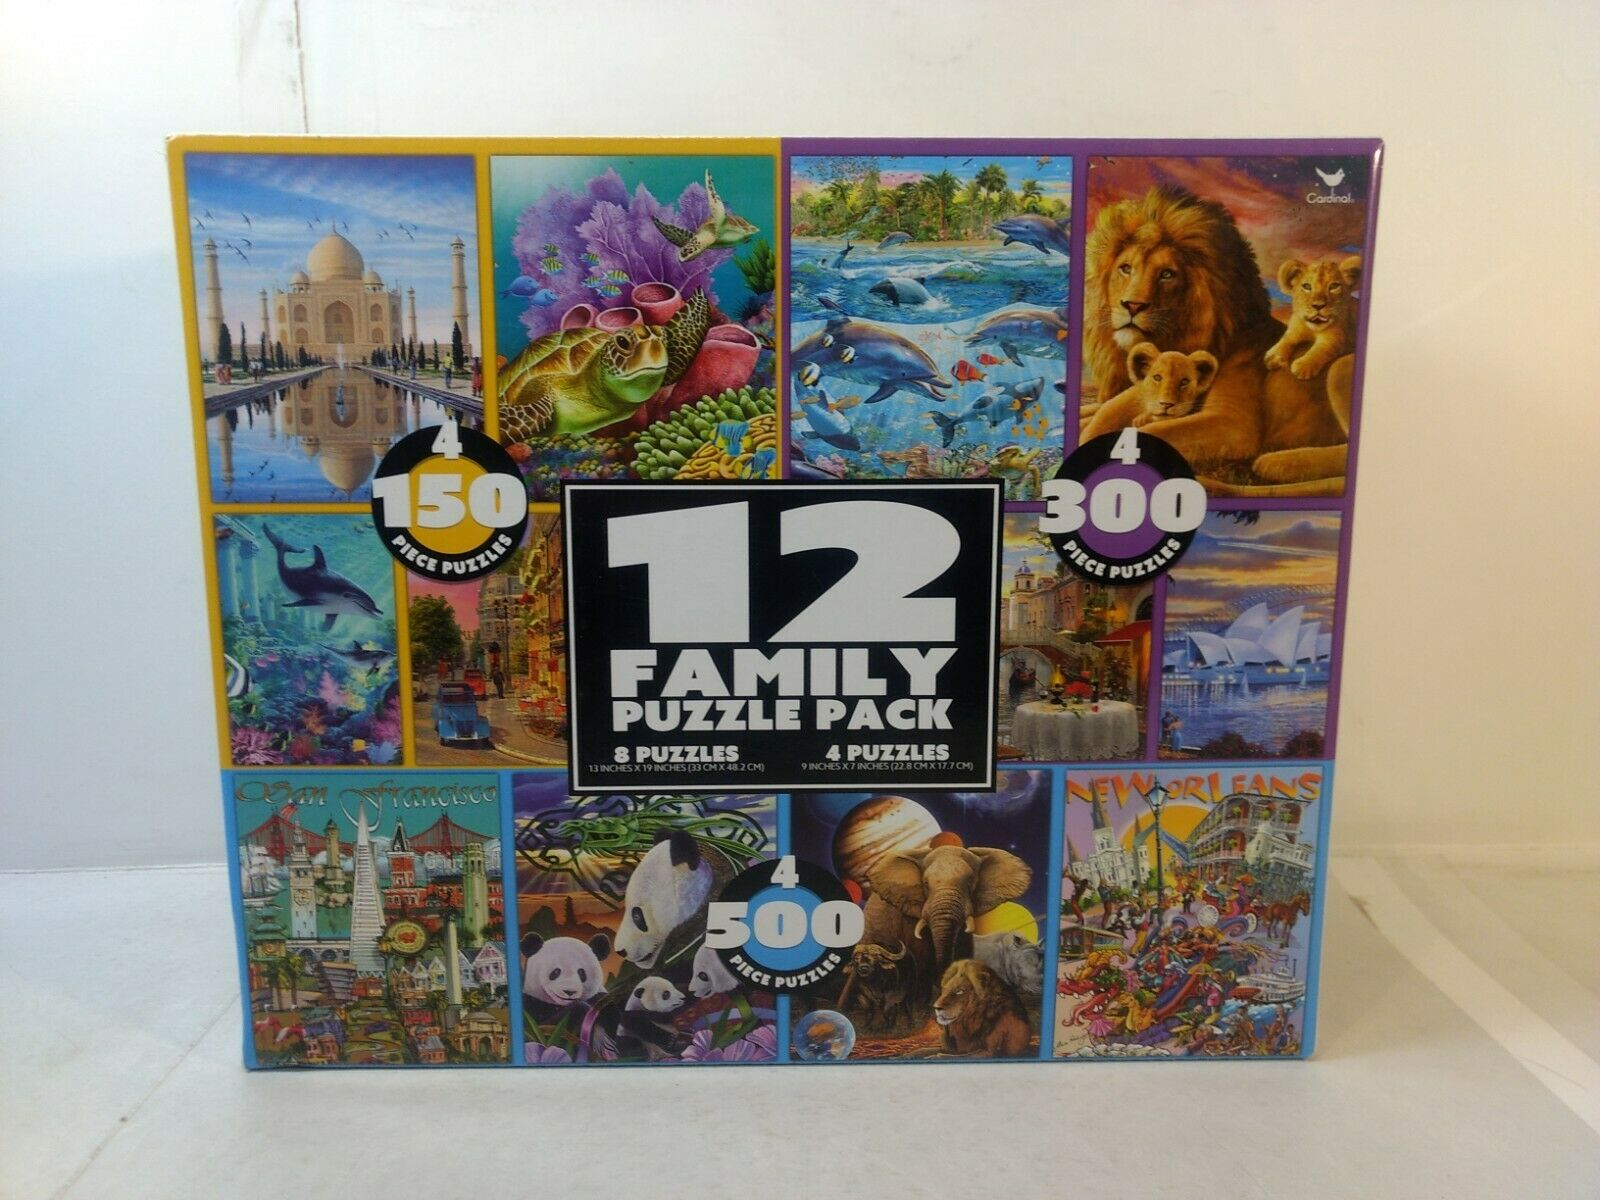 12 Family Puzzle Pack Cardinal Industries